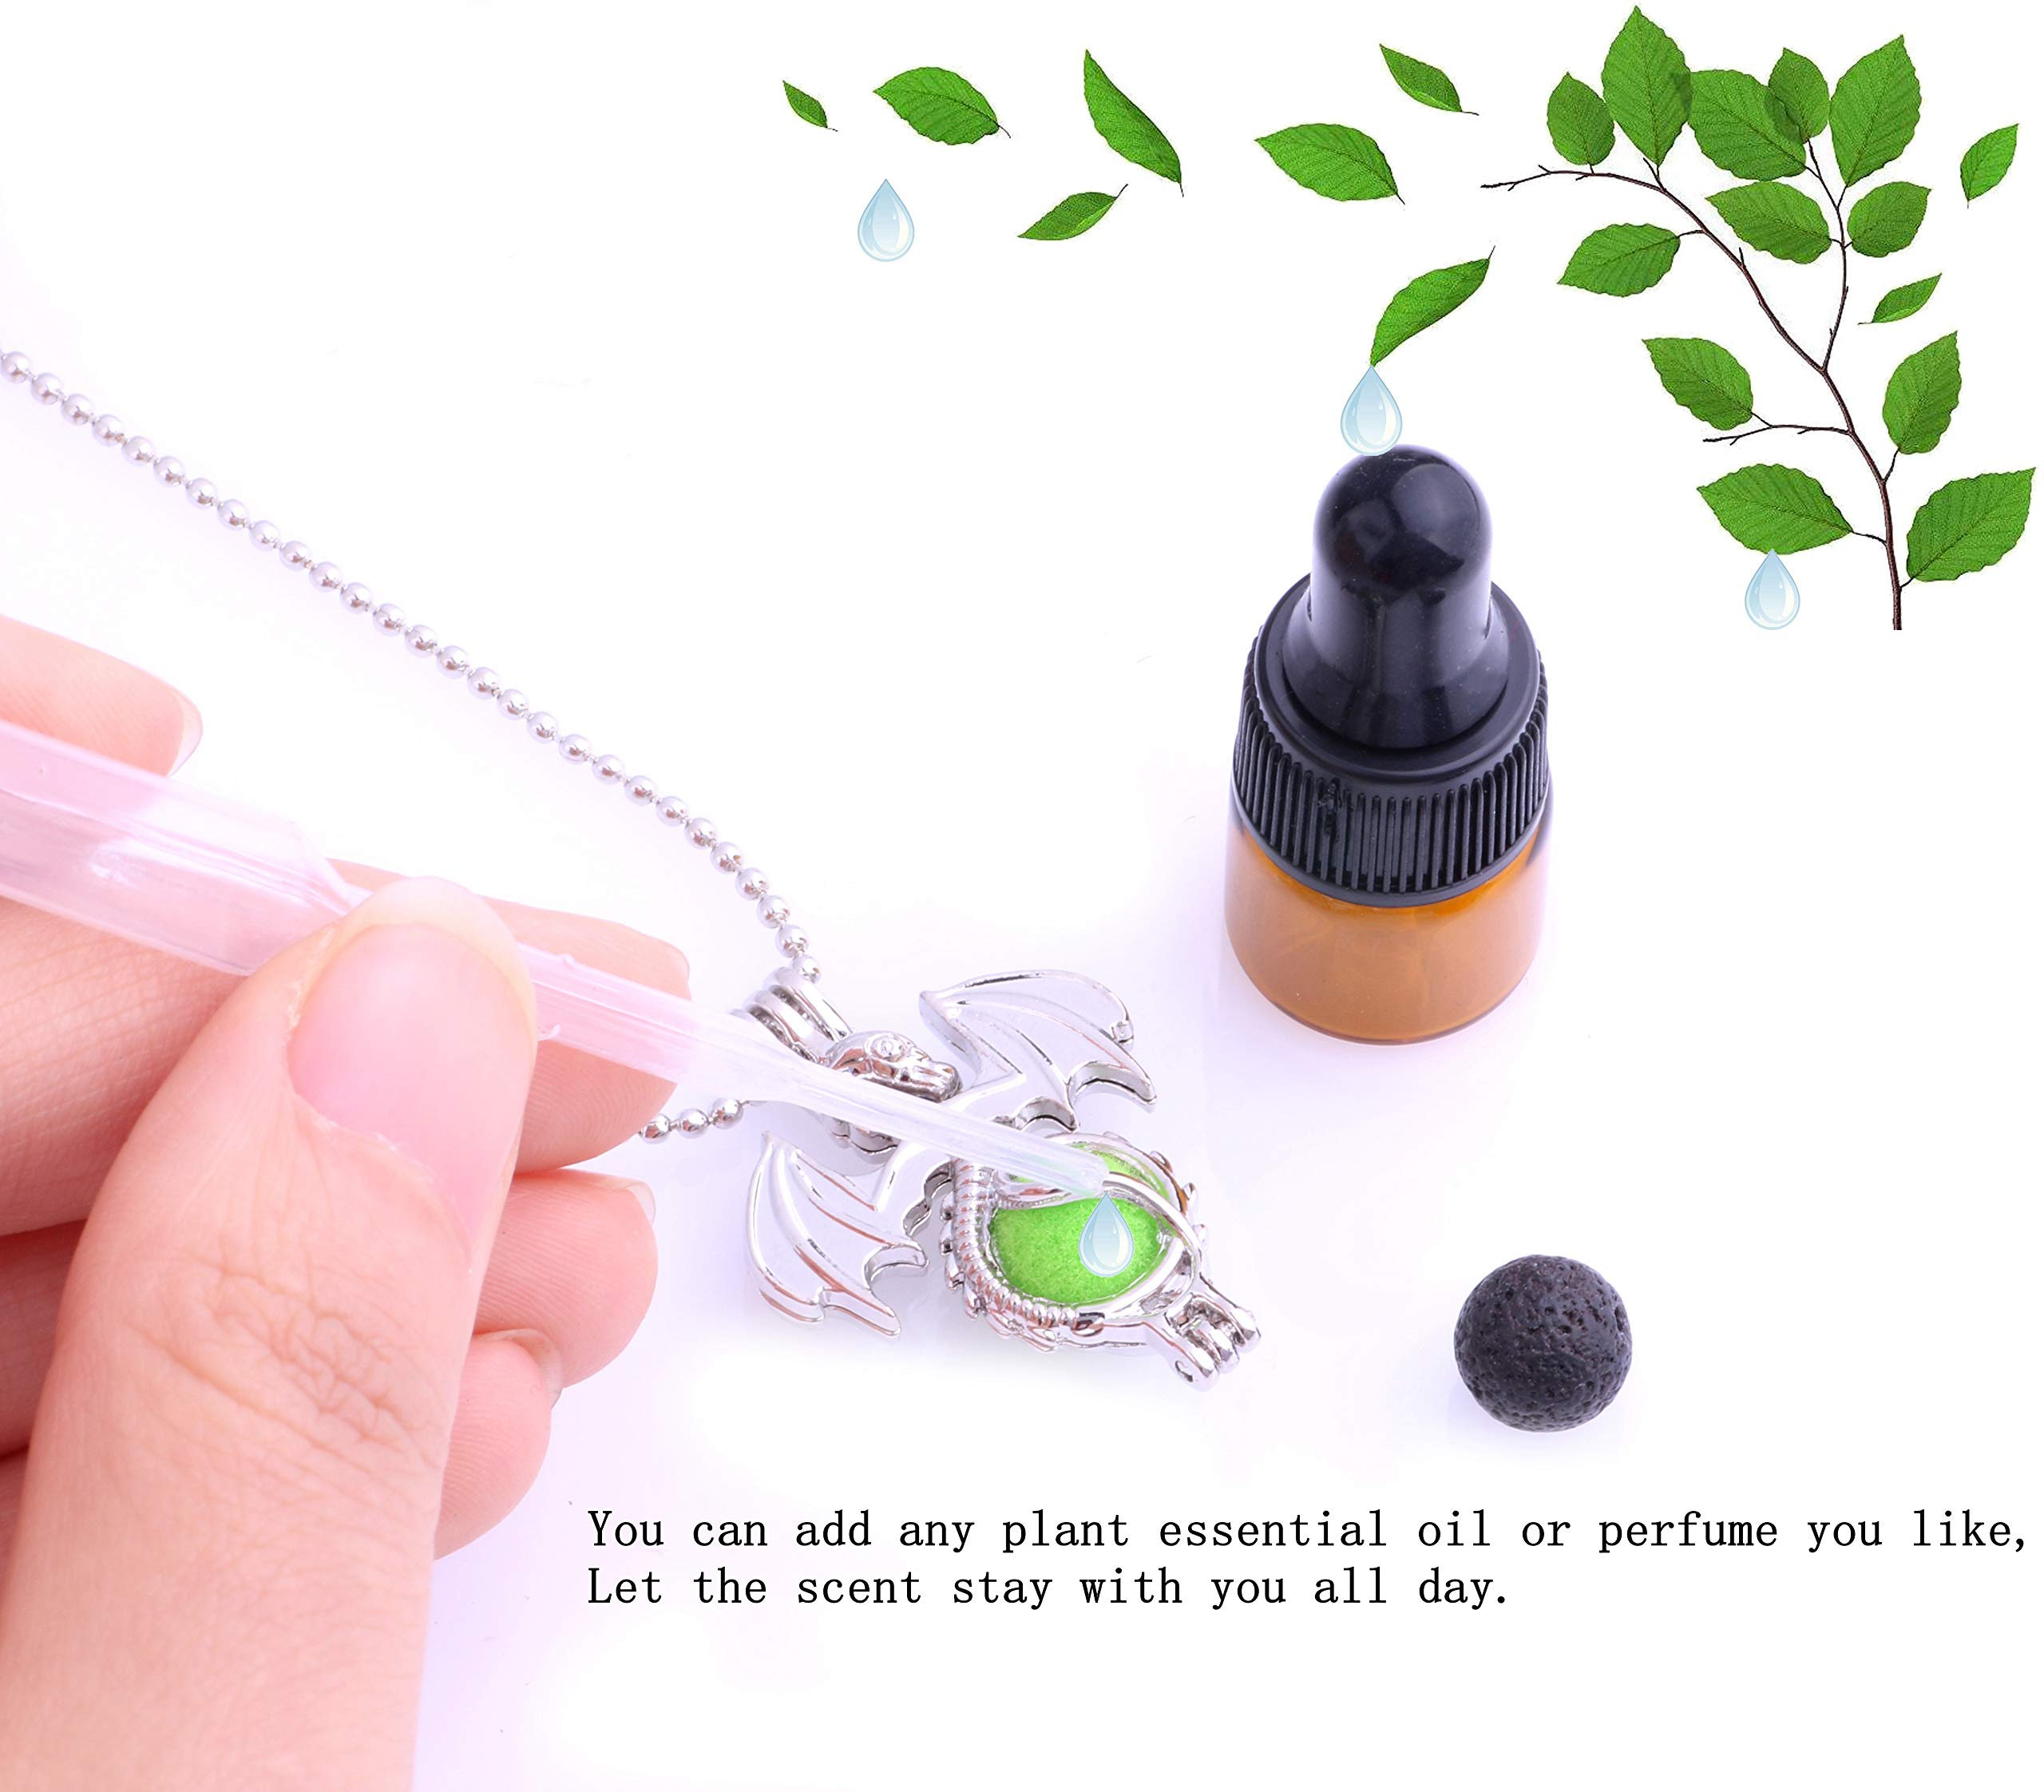 30pcs Mix Stainless Steel Tones Alloy Bead Cage Pendant - Add Your Own Pearls, Stones, Rock to Cage,Add Perfume and Essential Oils to Create a Scent Diffusing Locket Pendant Christmas Gift Charms by Yaoding (Image #5)